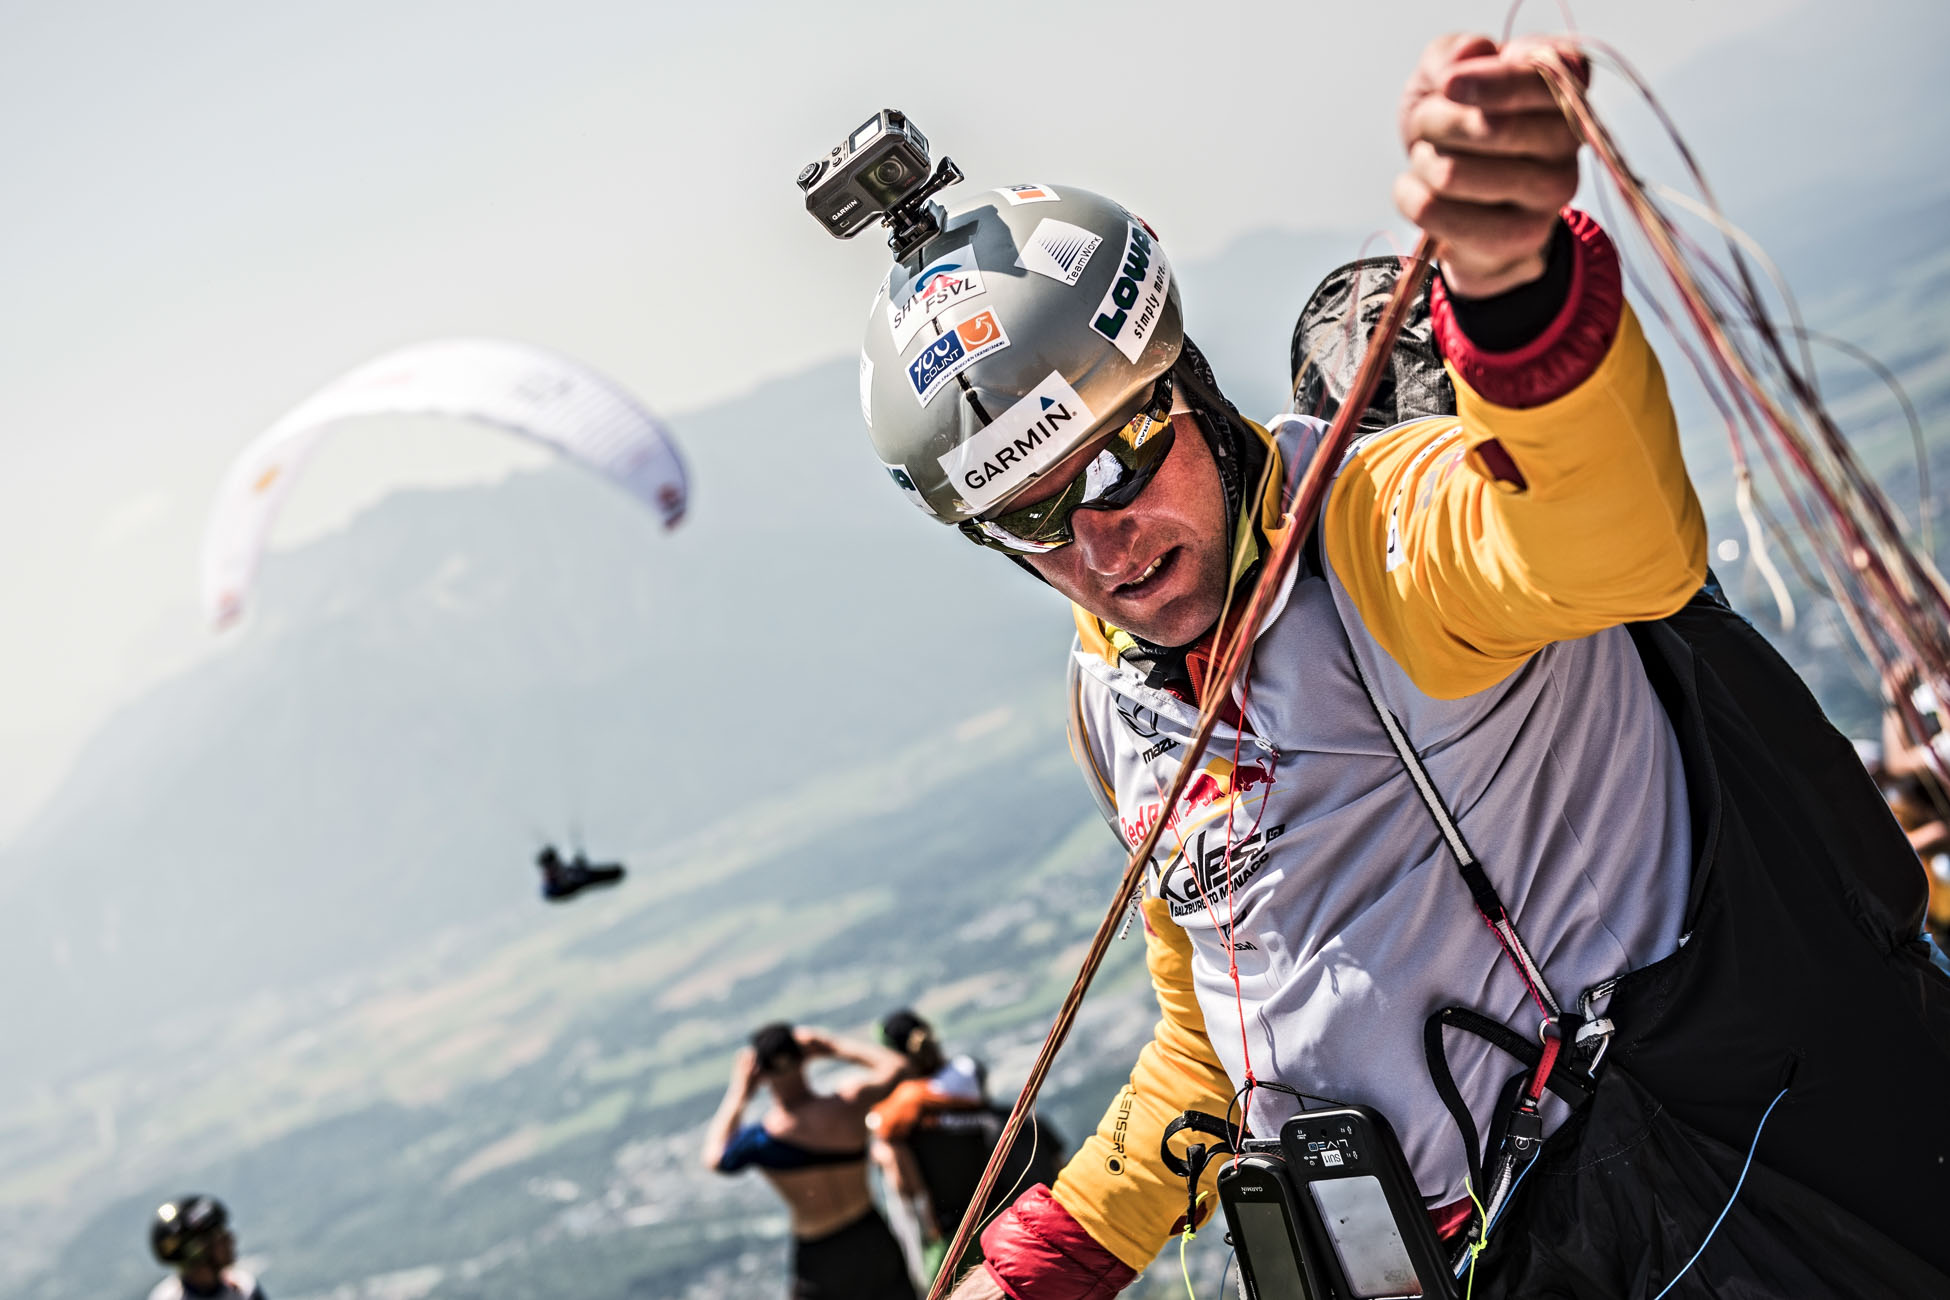 Christian Maurer of Switzerland preparing to take off at turnpoint one of the Red Bull X-Alps 2015, Gaisberg, Salzburg, Austria on July 5 2015. // Sebastian Marko/Red Bull Content Pool // P-20150705-00387 // Usage for editorial use only // Please go to www.redbullcontentpool.com for further information. //